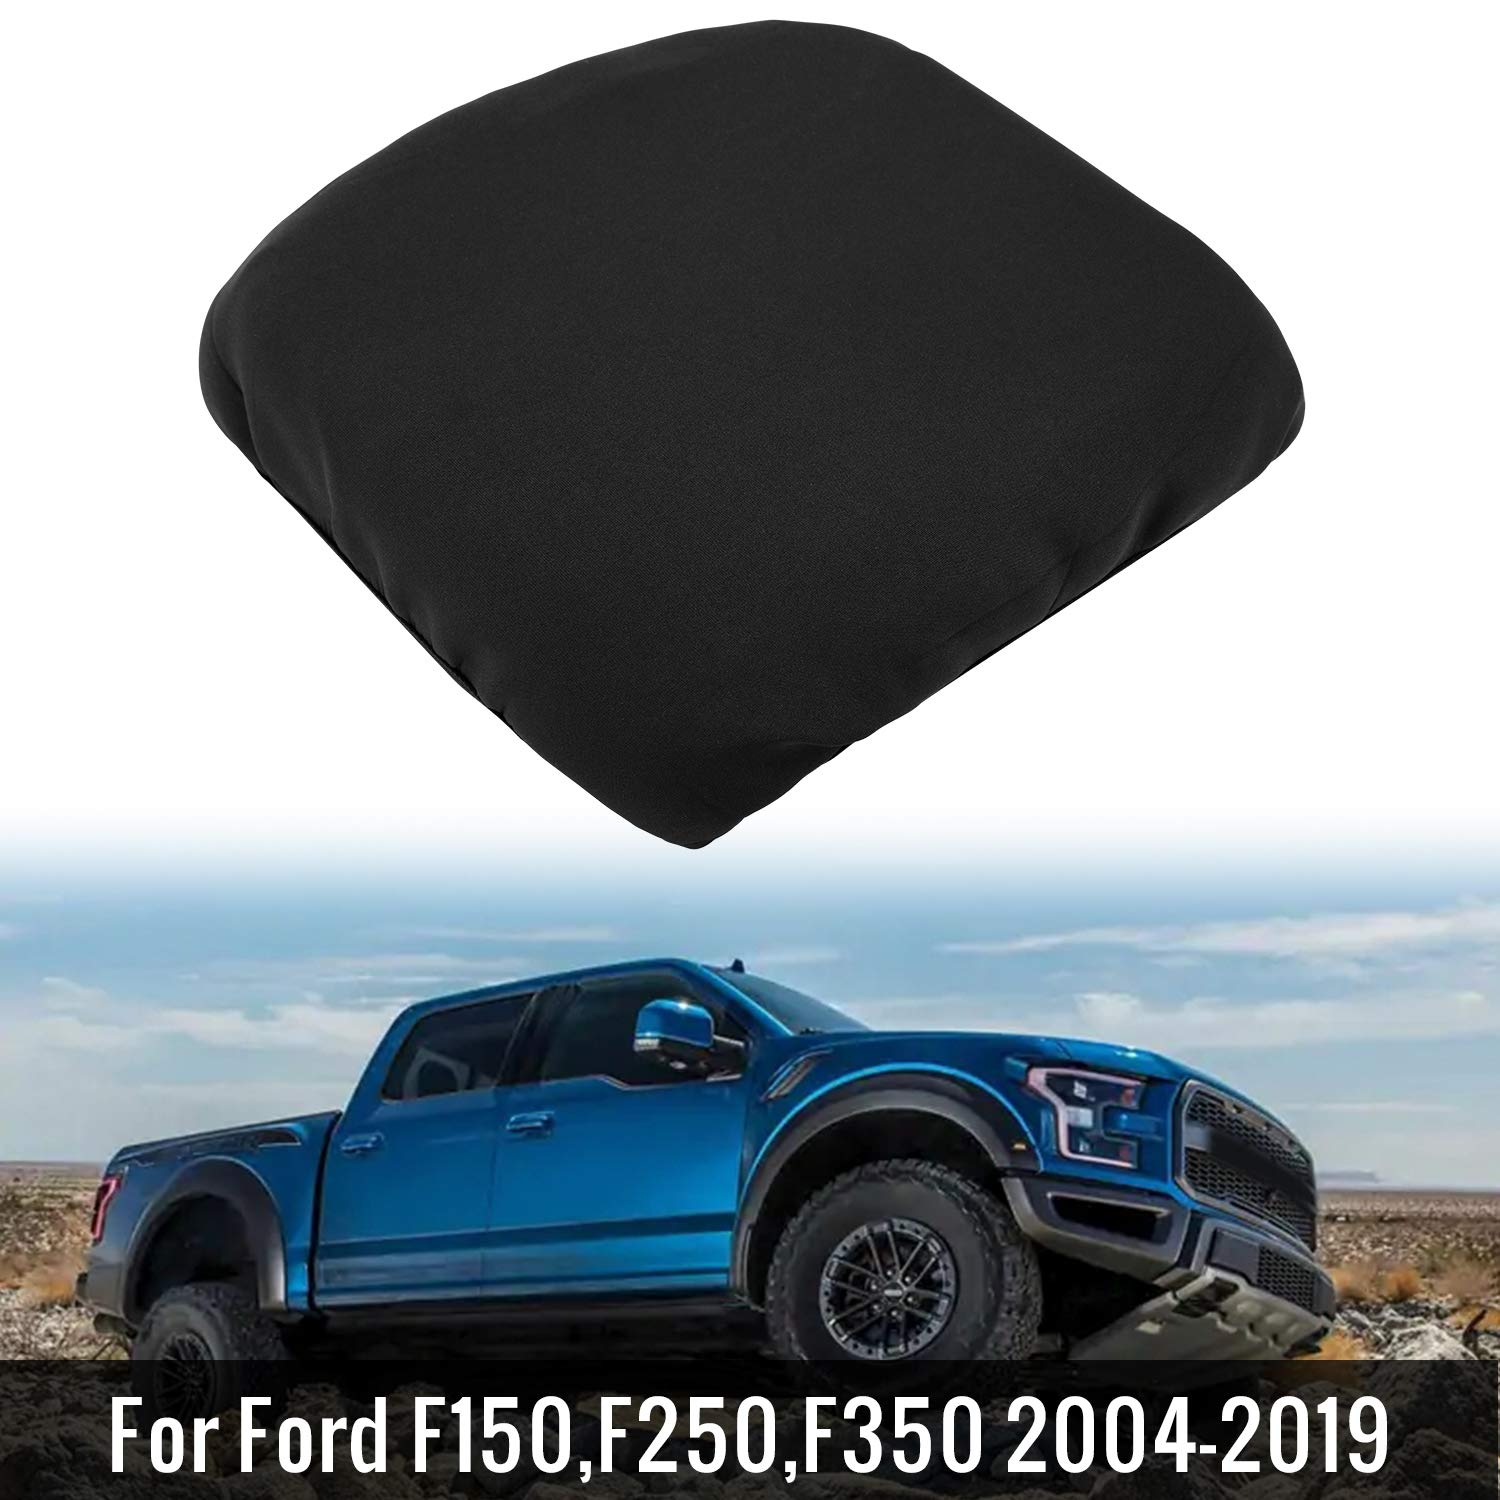 Seven Sparta Center Console Cover for Ford F150, F250, F350 2004-2019, Waterproof Anti-Scratch Car Console Cover, Center Console Armrest Protector, Your Console Lid Must Open and Match Photo Shown by Seven Sparta